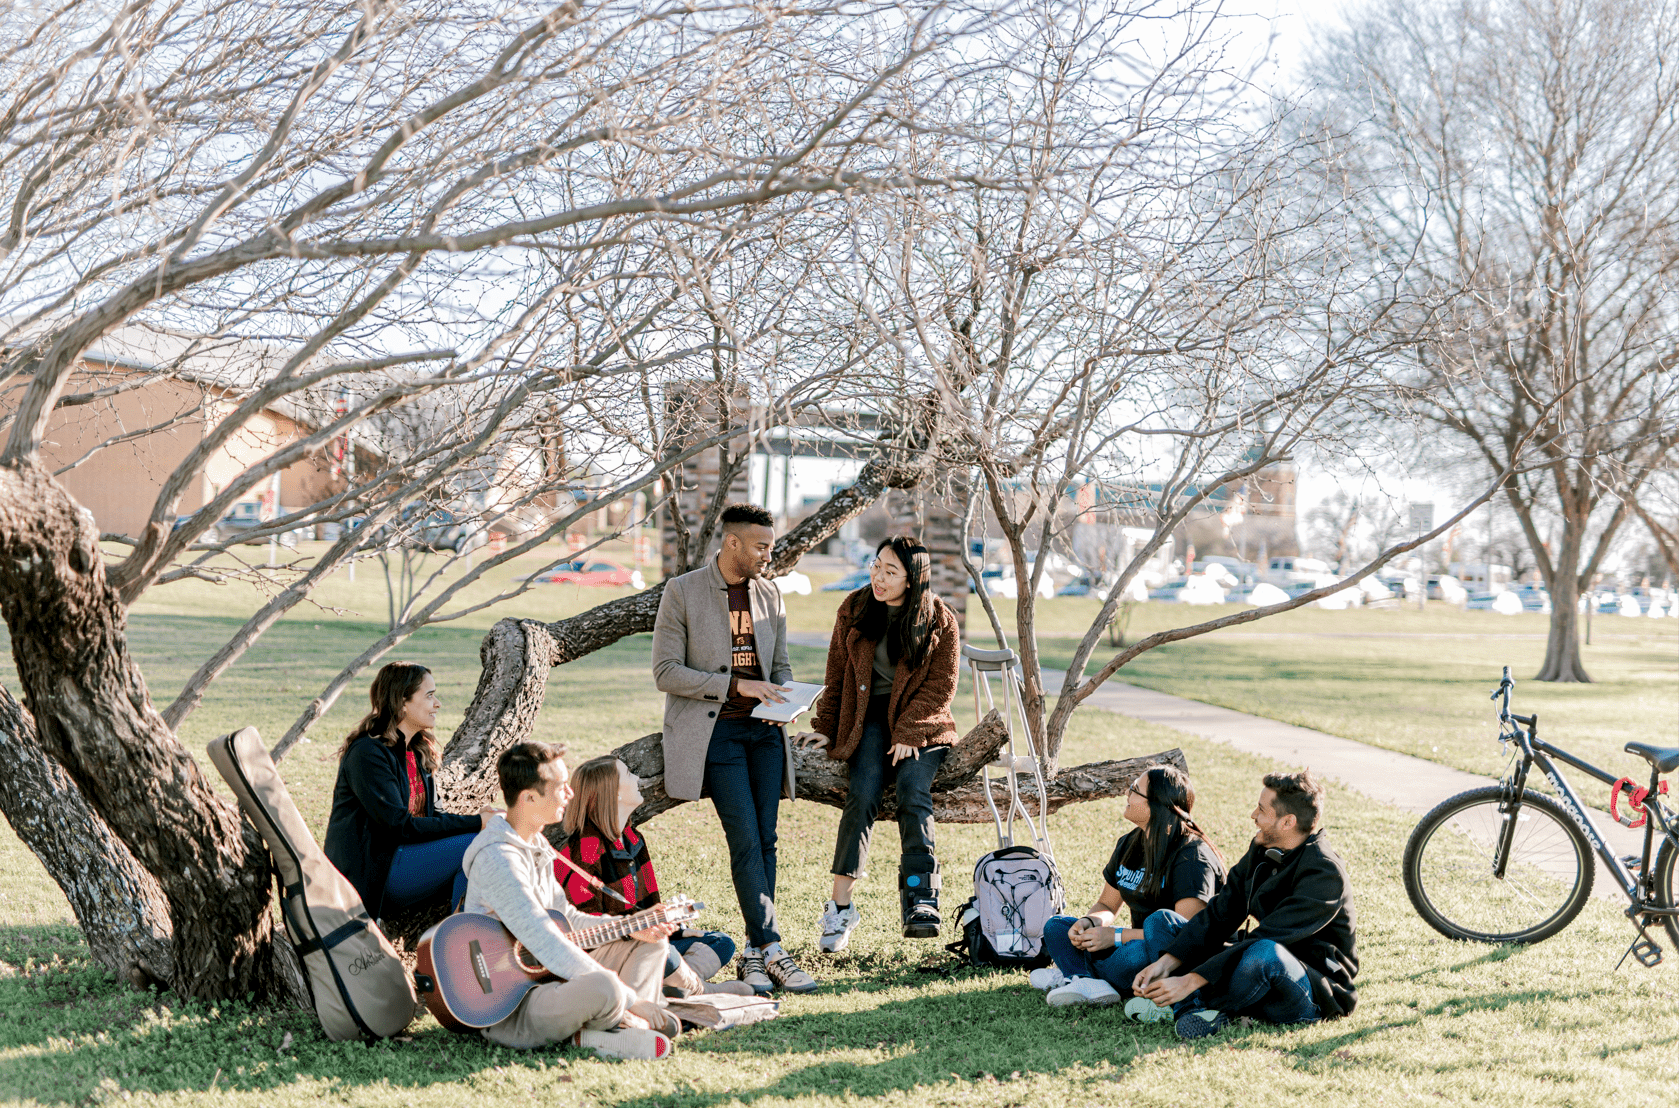 A group of students hang out and sit on and below a low tree